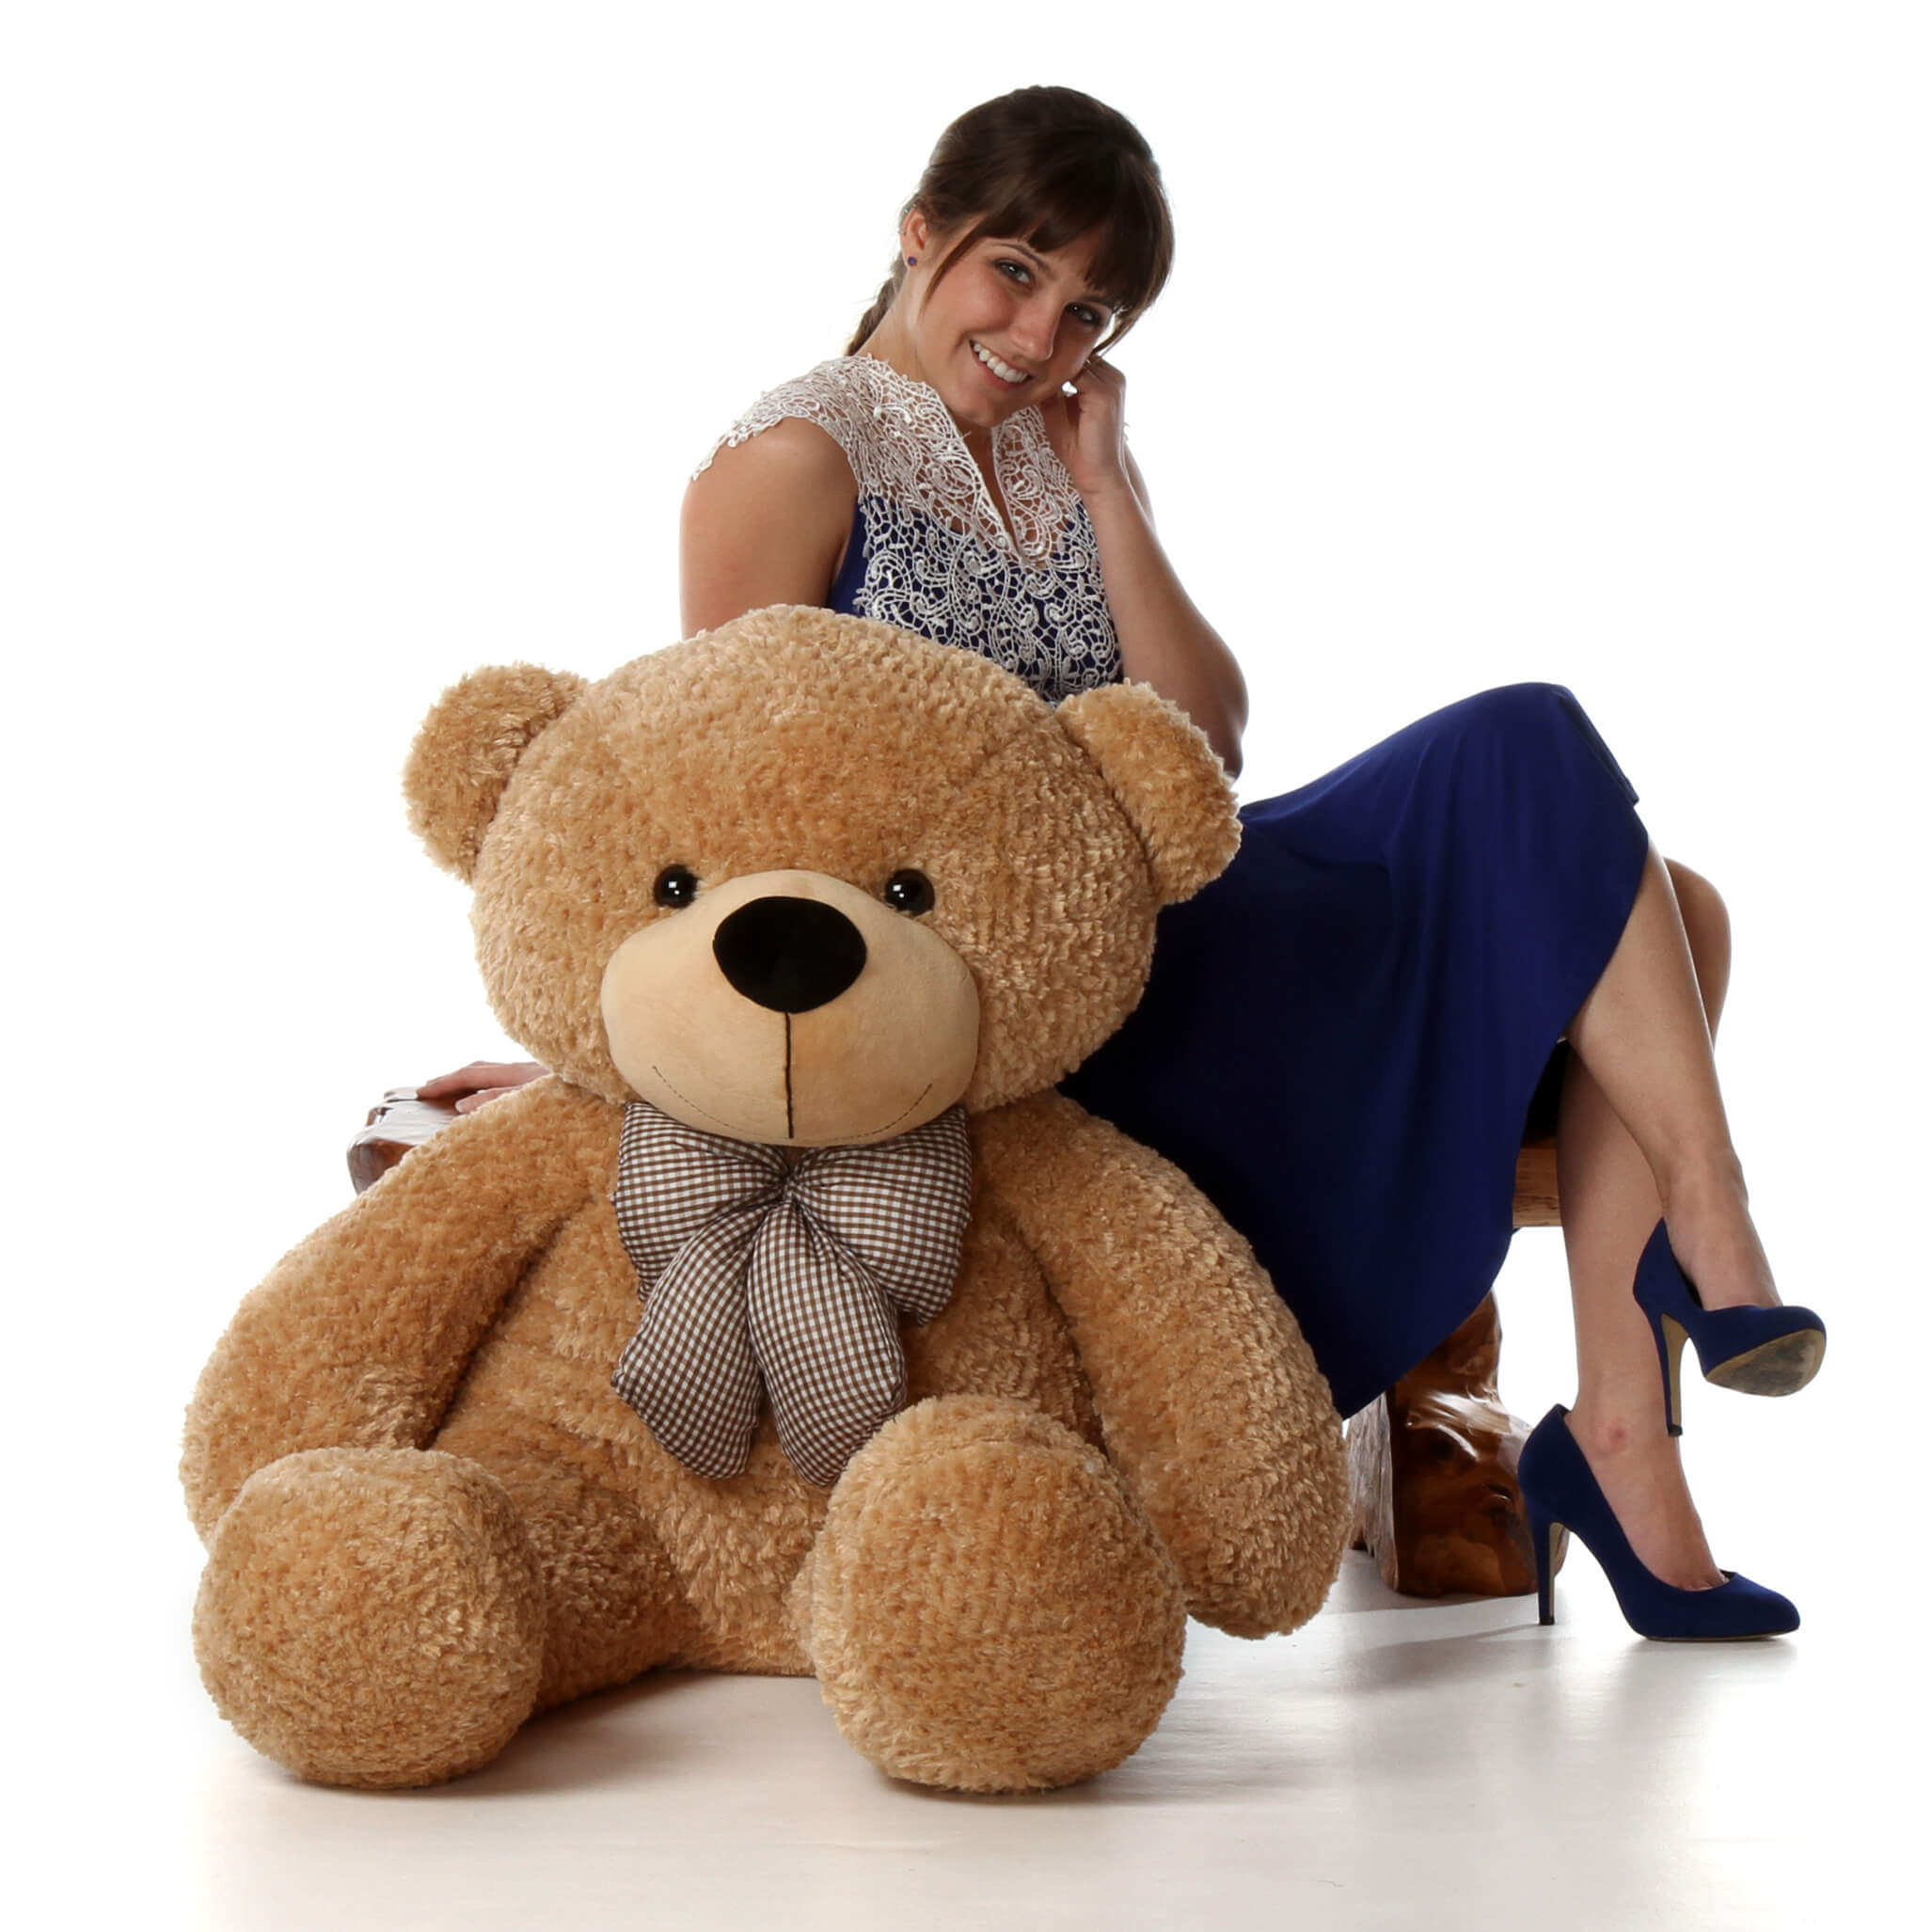 life-size-amber-brown-teddy-bear-shaggy-cuddles-48in-1.jpg